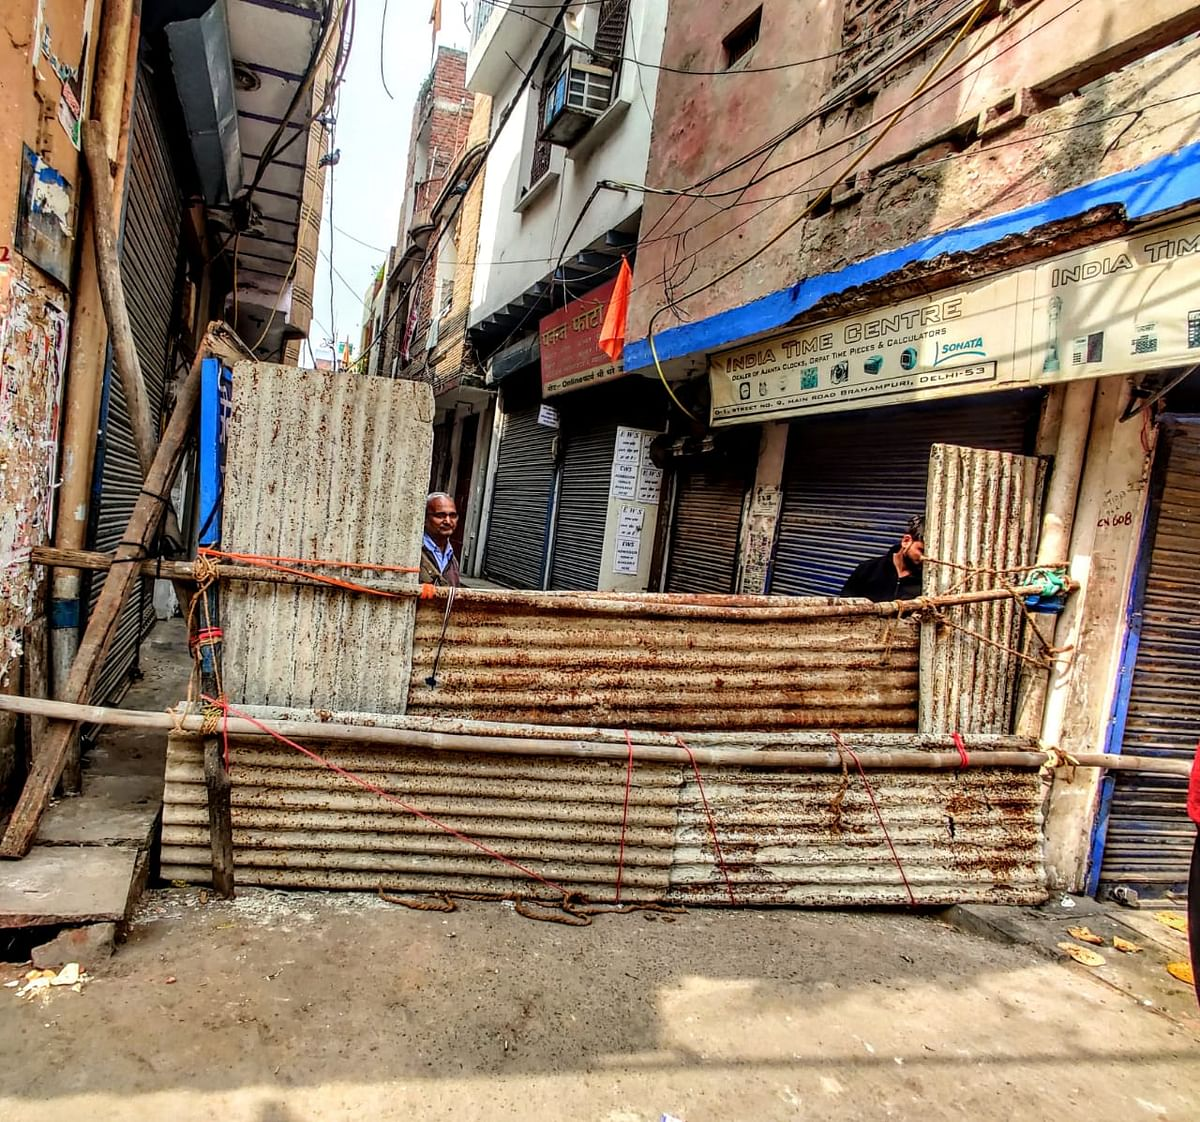 Primarily Hindu-dominated streets have been barricaded by residents to ensure no repeat of violence.